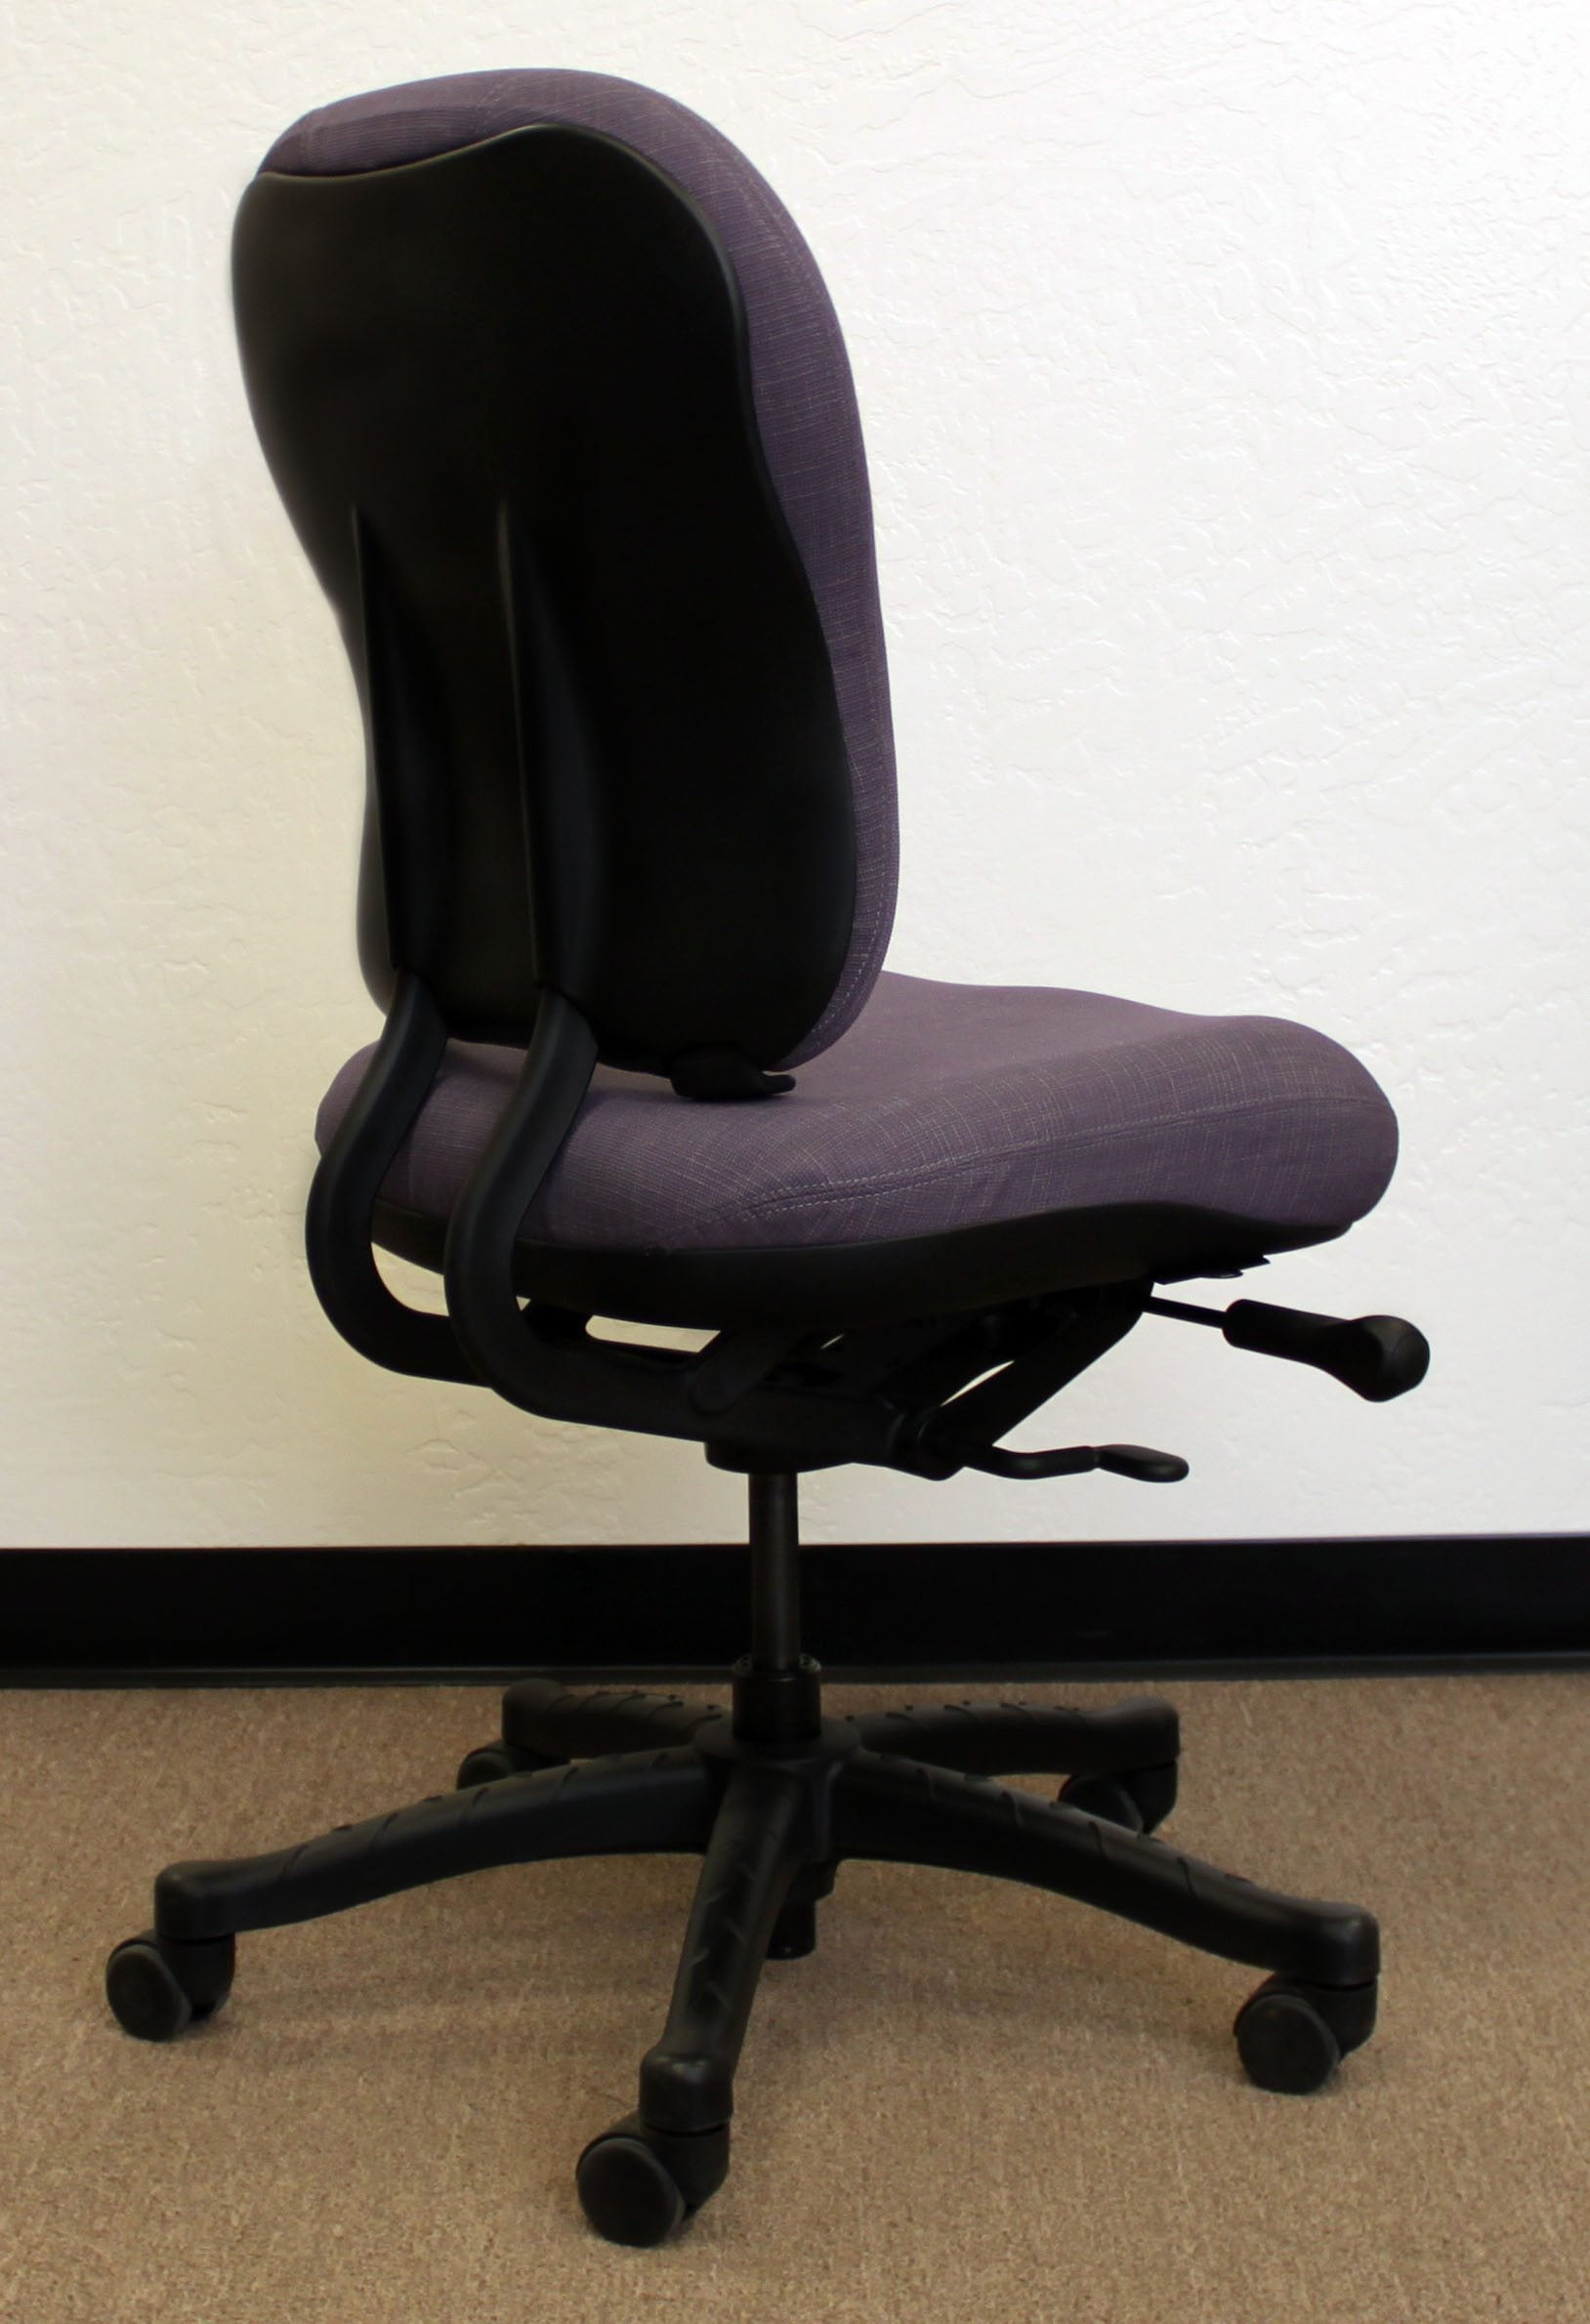 knoll rpm chair universal covers ivory used ergonomic high back task purple